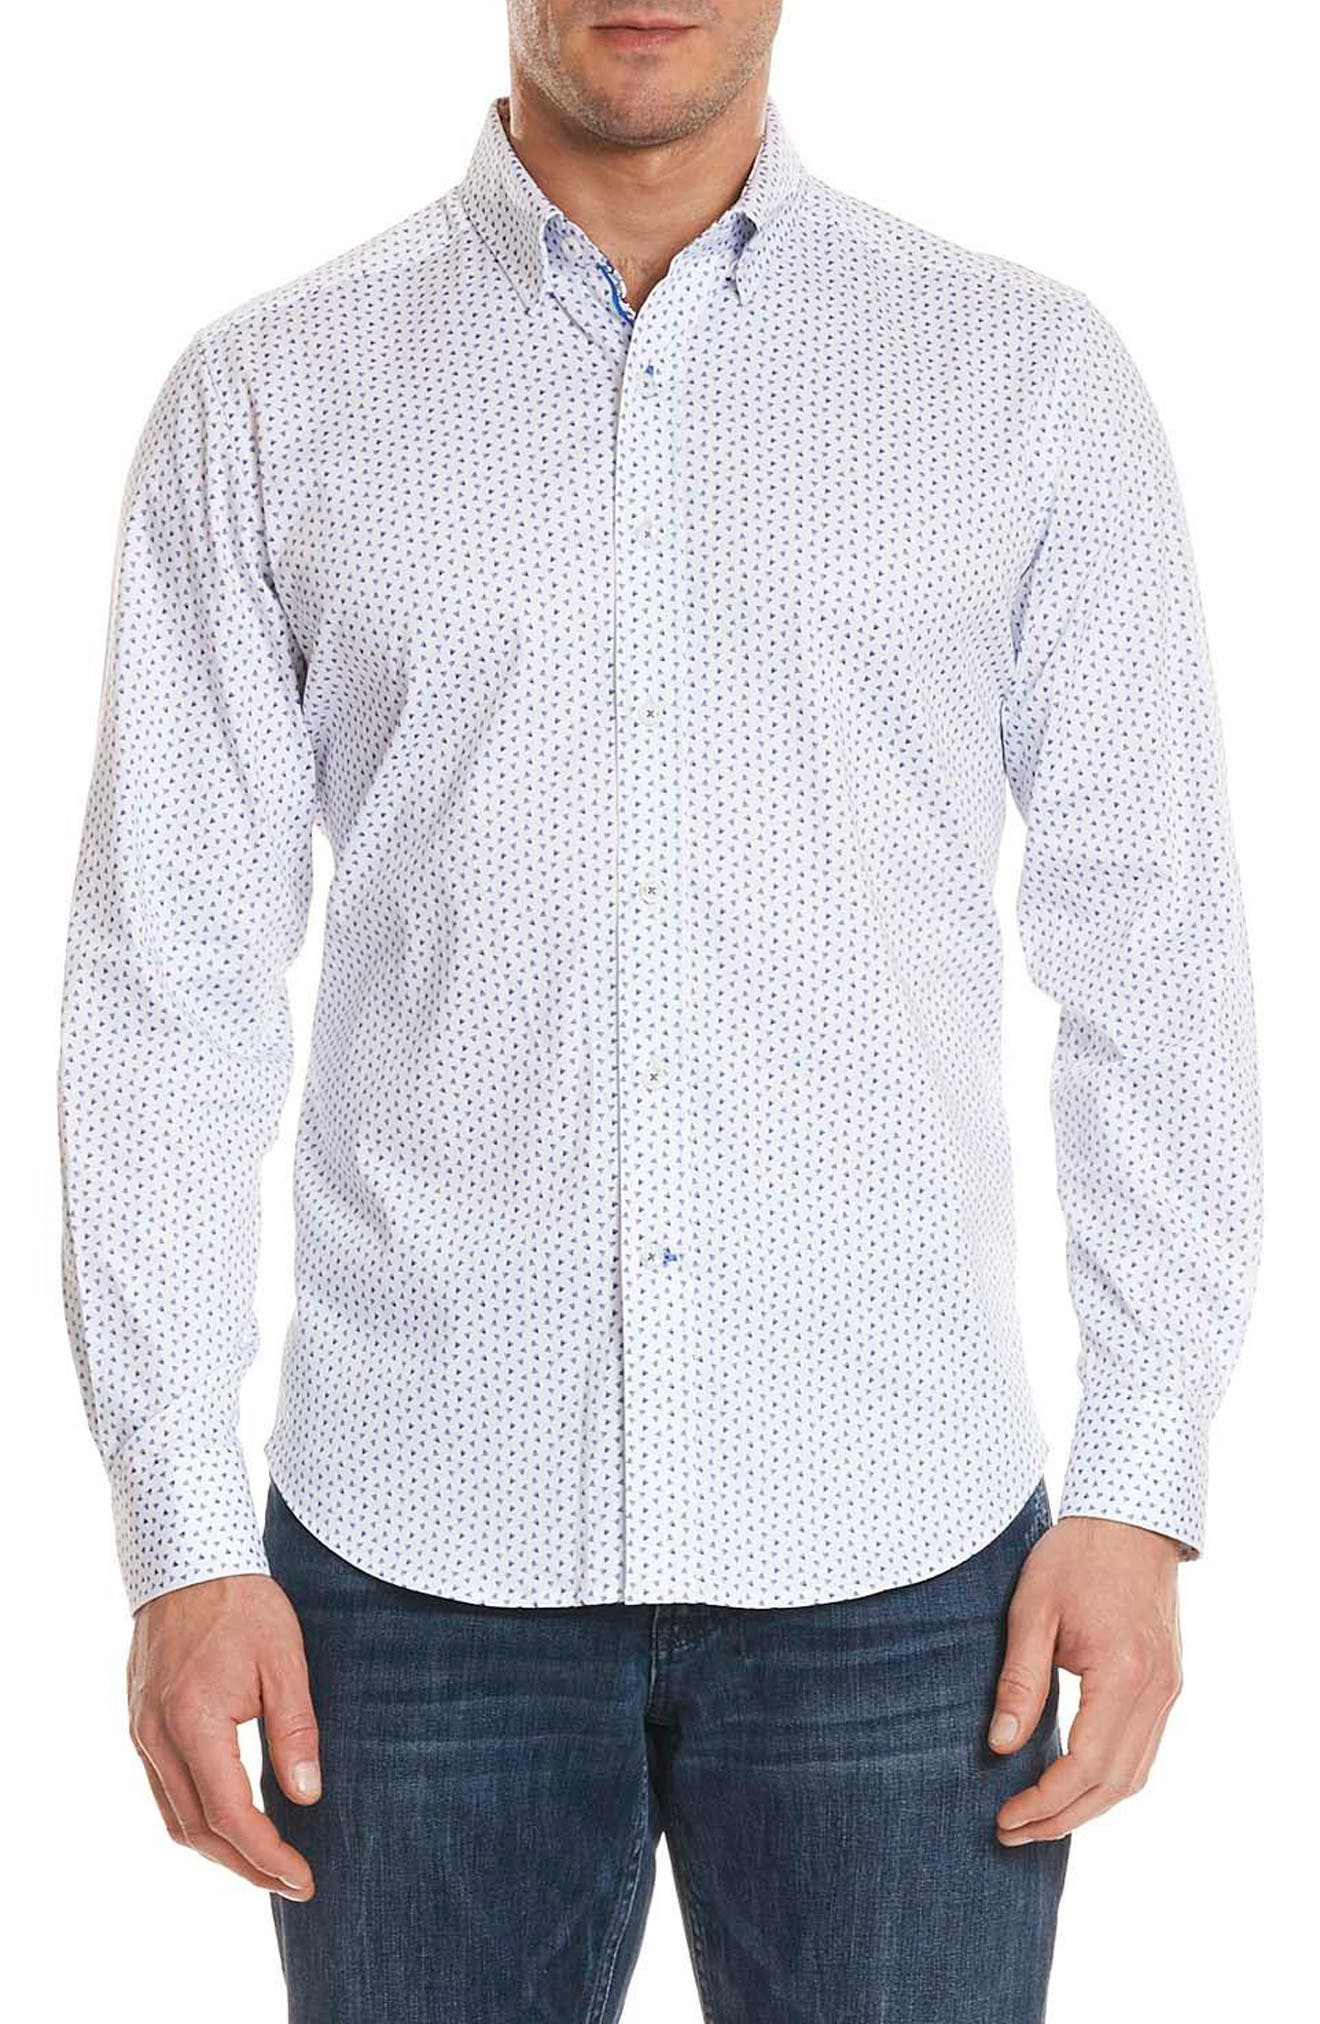 ROBERT GRAHAM,                             Mitchel Tailored Fit Sport Shirt,                             Main thumbnail 1, color,                             400